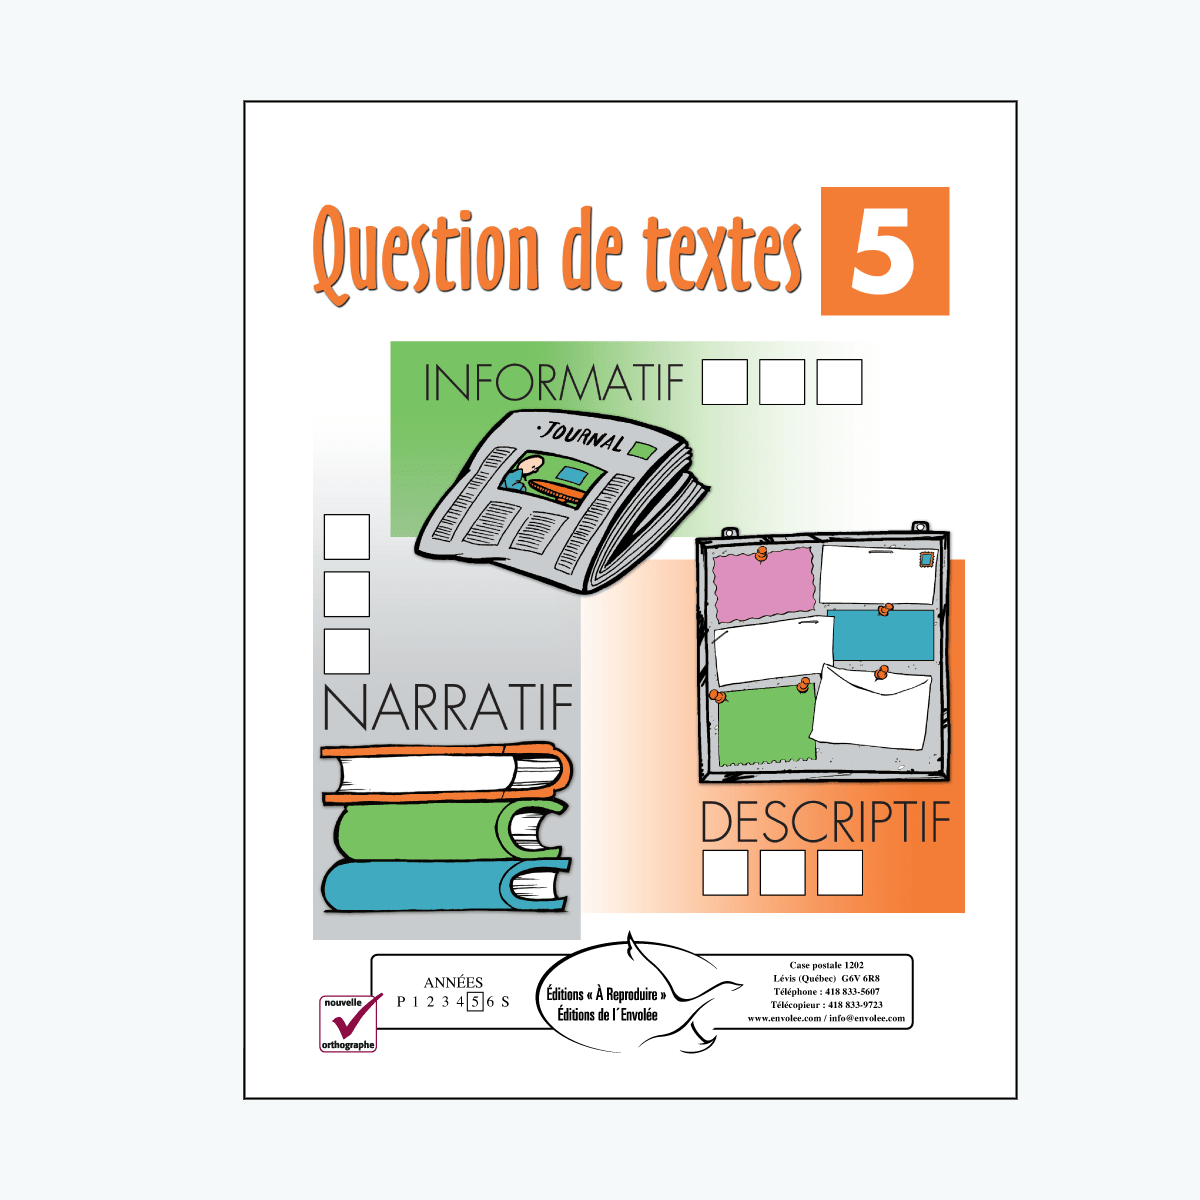 Question de textes 5